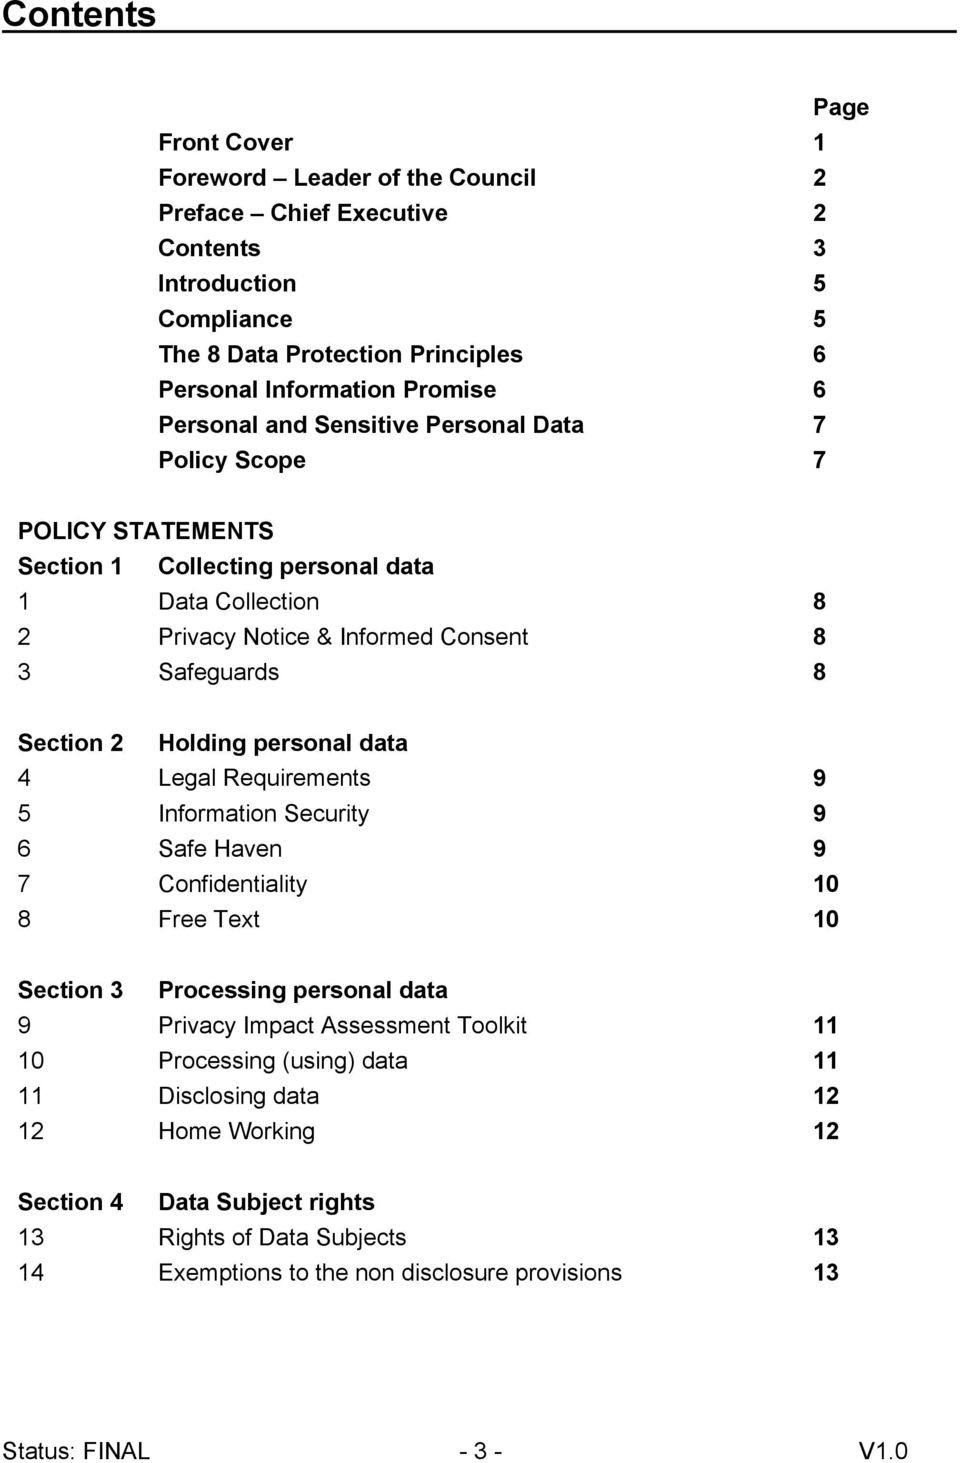 Holding personal data 4 Legal Requirements 9 5 Information Security 9 6 Safe Haven 9 7 Confidentiality 10 8 Free Text 10 Section 3 Processing personal data 9 Privacy Impact Assessment Toolkit 11